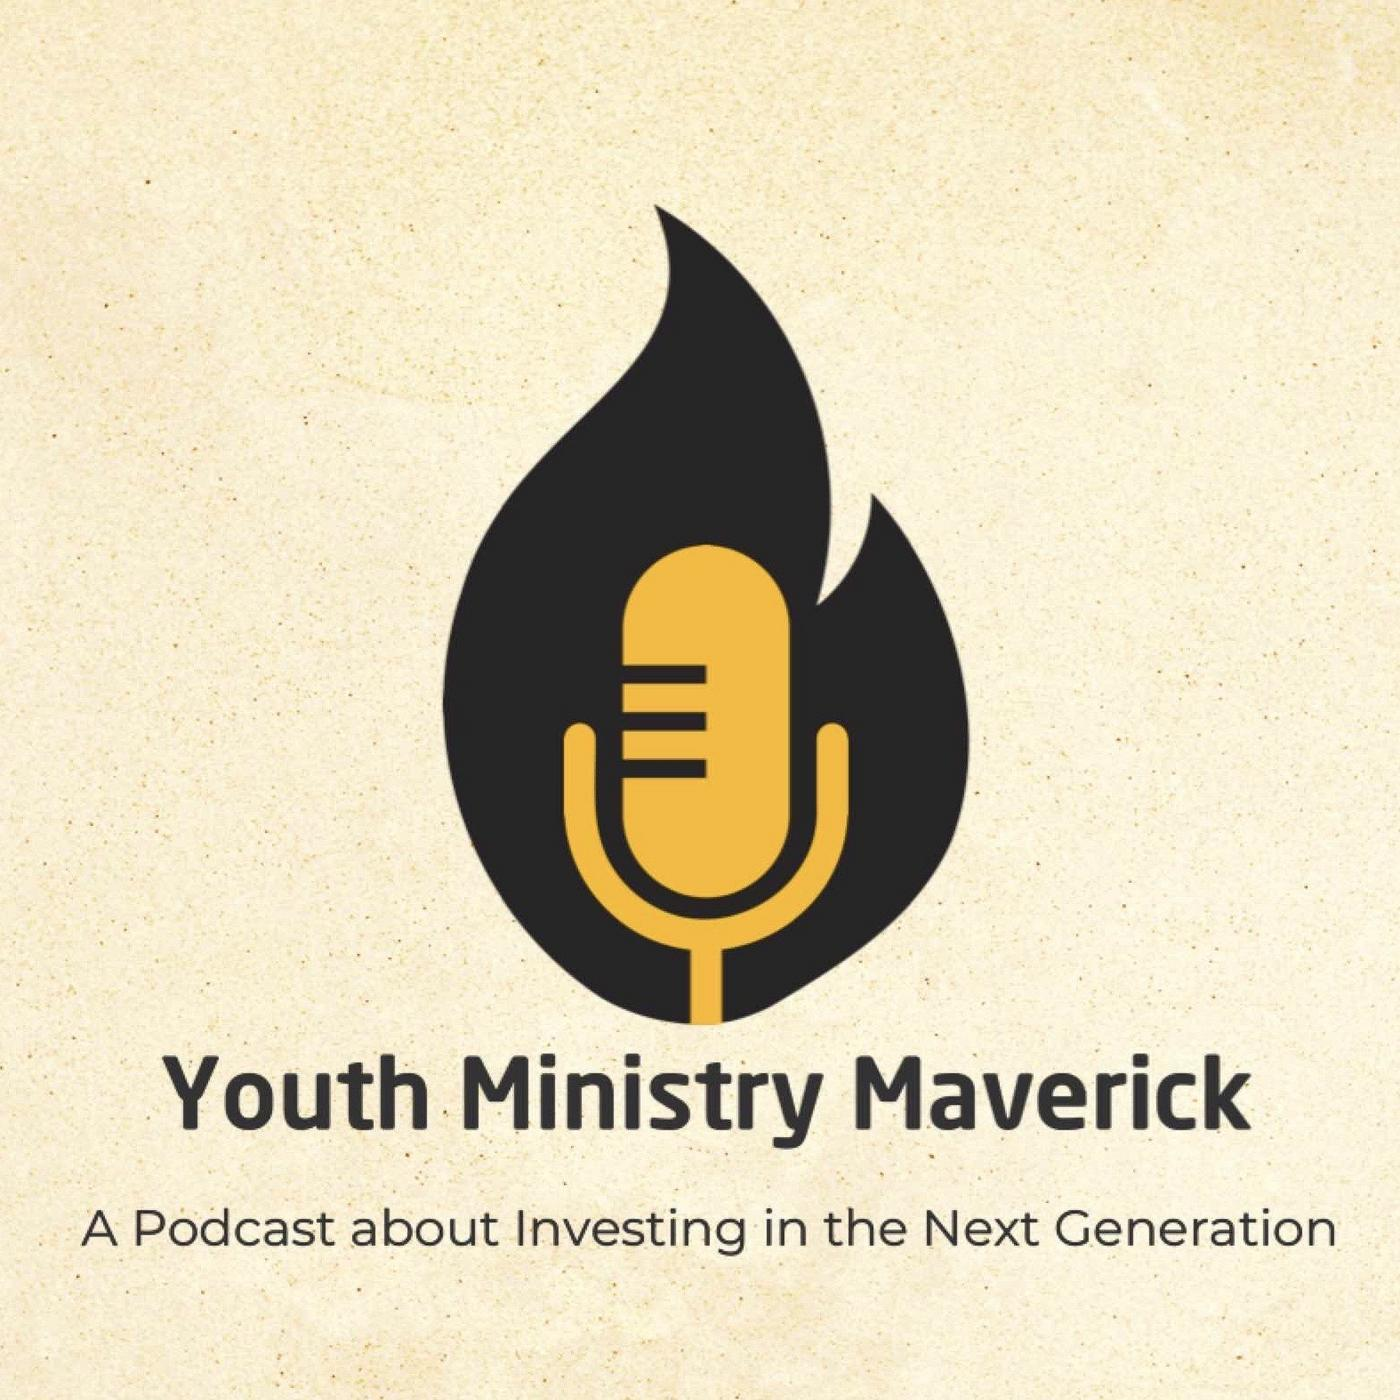 Episode 40: The Enneagram 1 Youth Worker